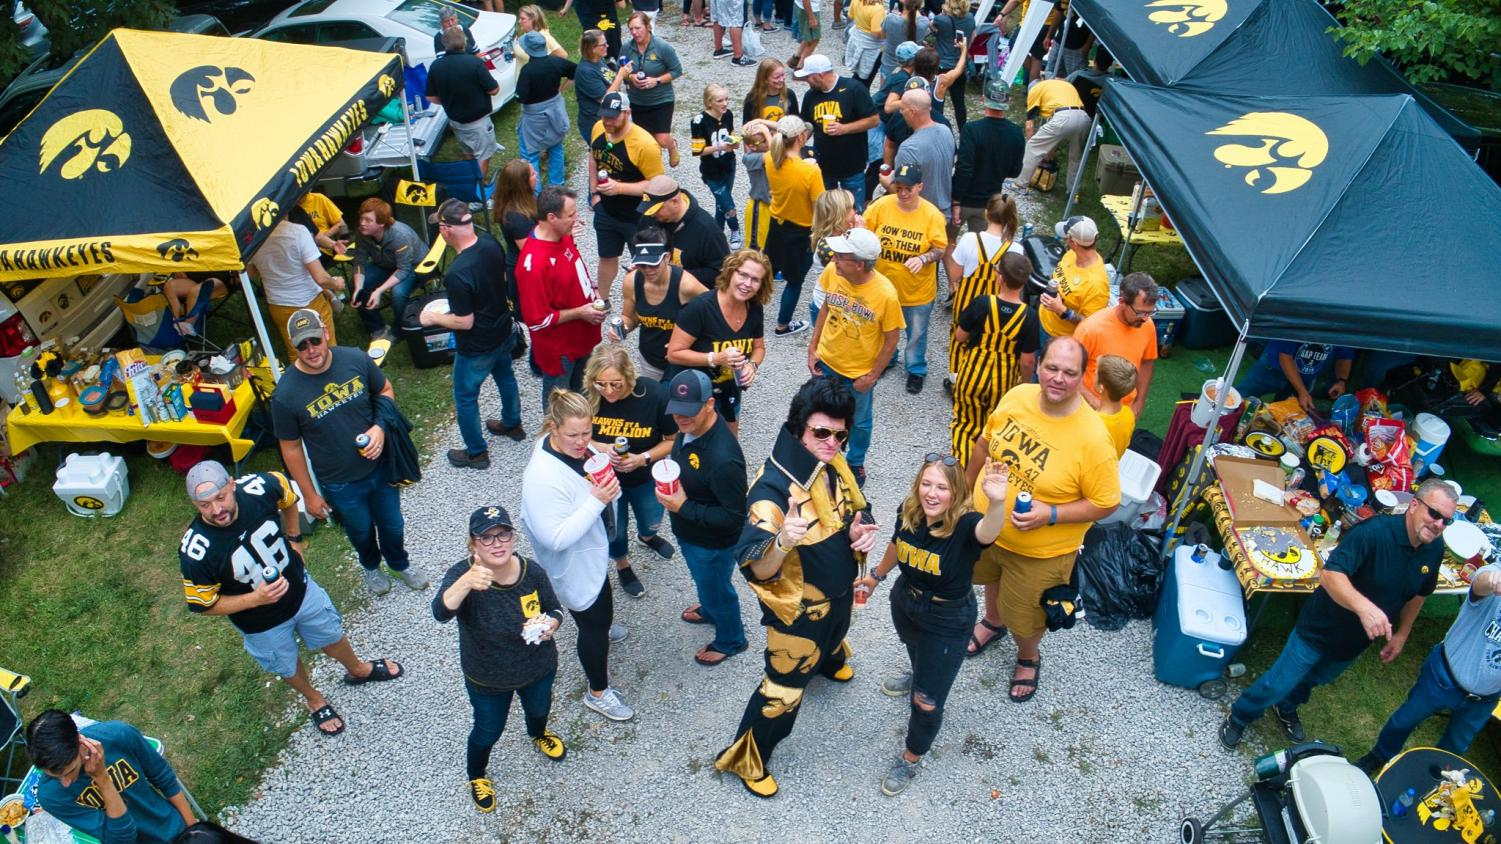 Greg Suckow, known as Hawkeye Elvis, tailgates with friends he met through Twitter.